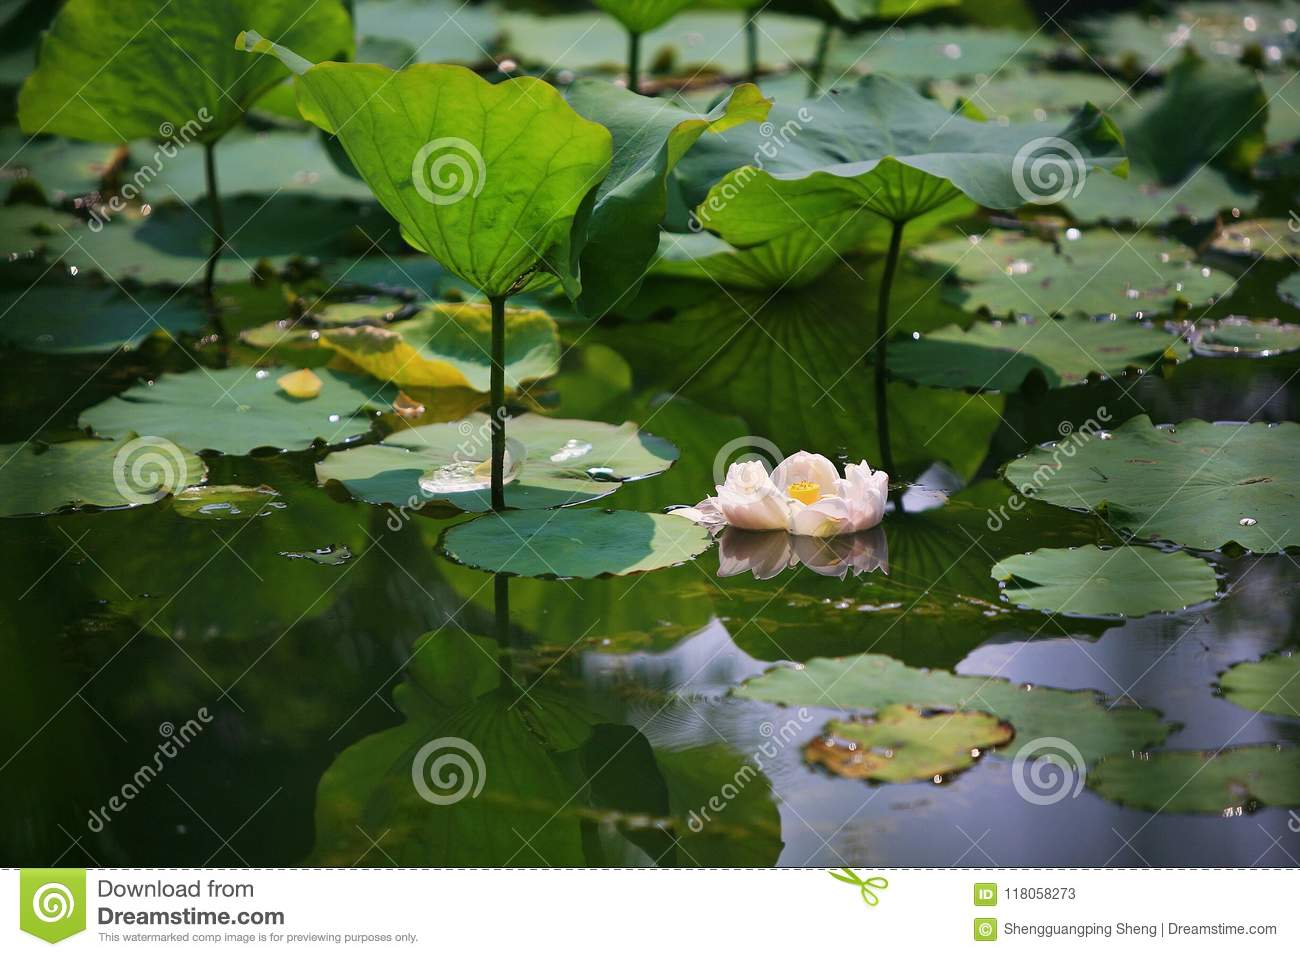 Charge stock image image of plant habitat cultivation 118058273 lotus is a kind of water seedling cultivation business lotus is also known as lotus flower and water lotus lotus is a kind of aquatic plant mightylinksfo